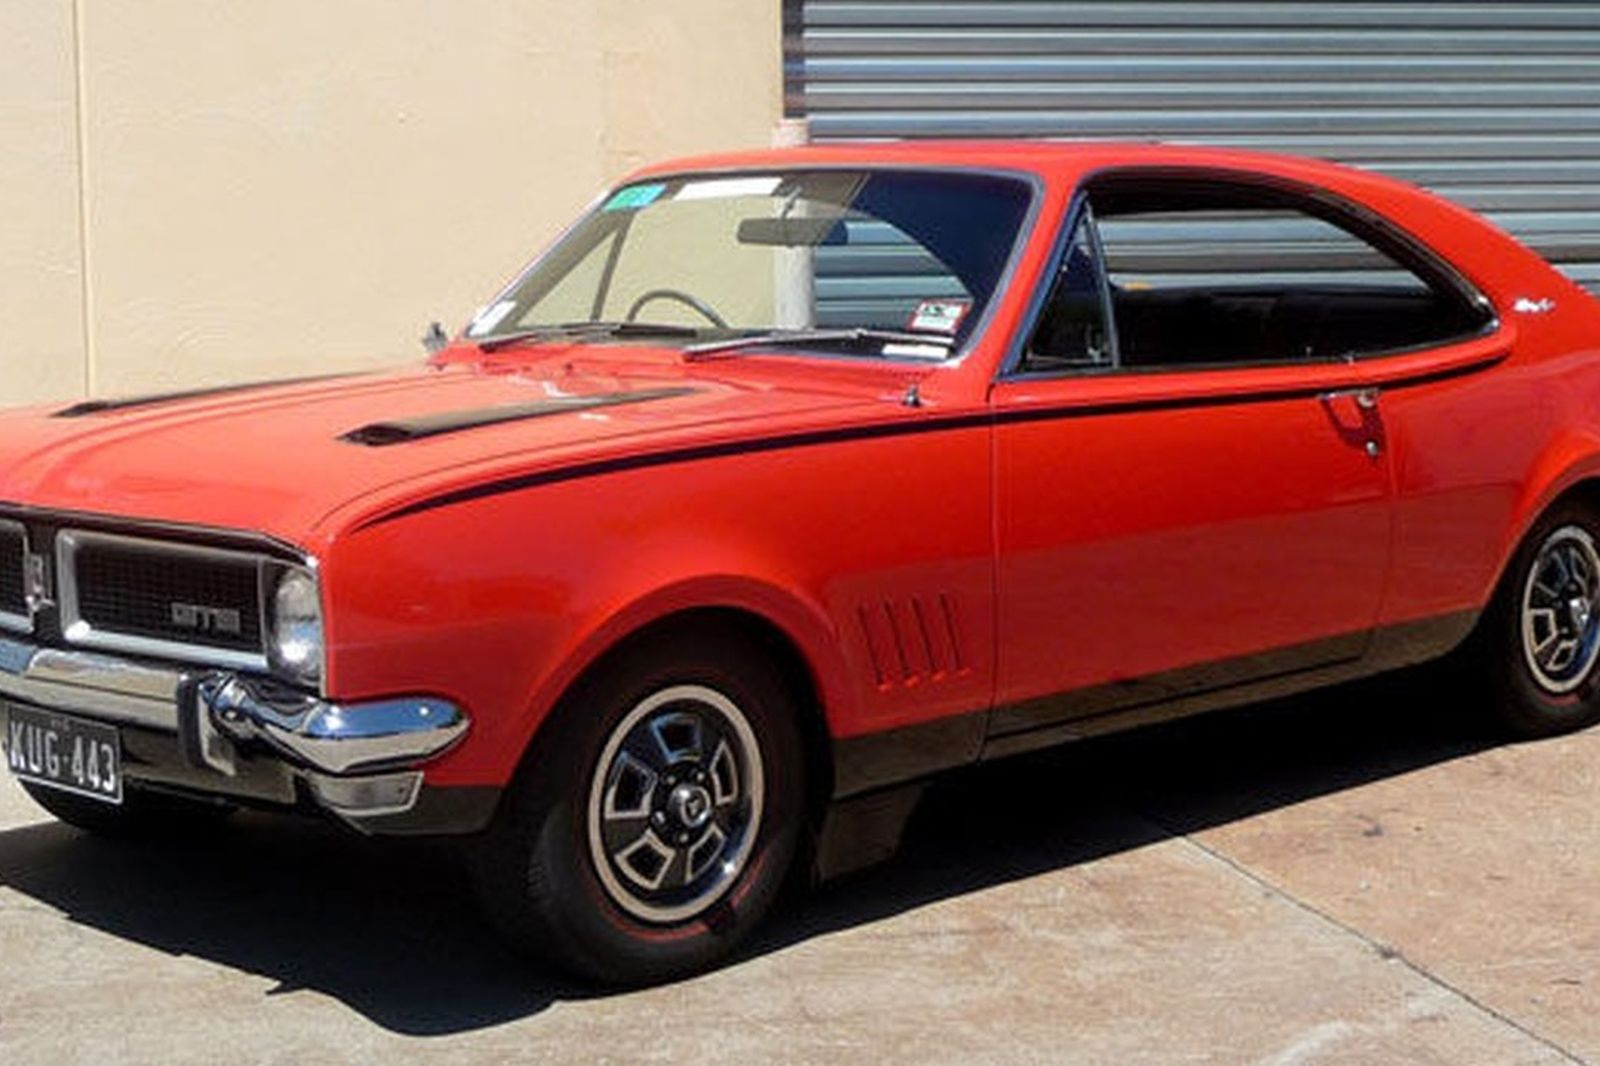 Holden Hg Monaro Gts 253 Coupe Auctions Lot 11 Shannons